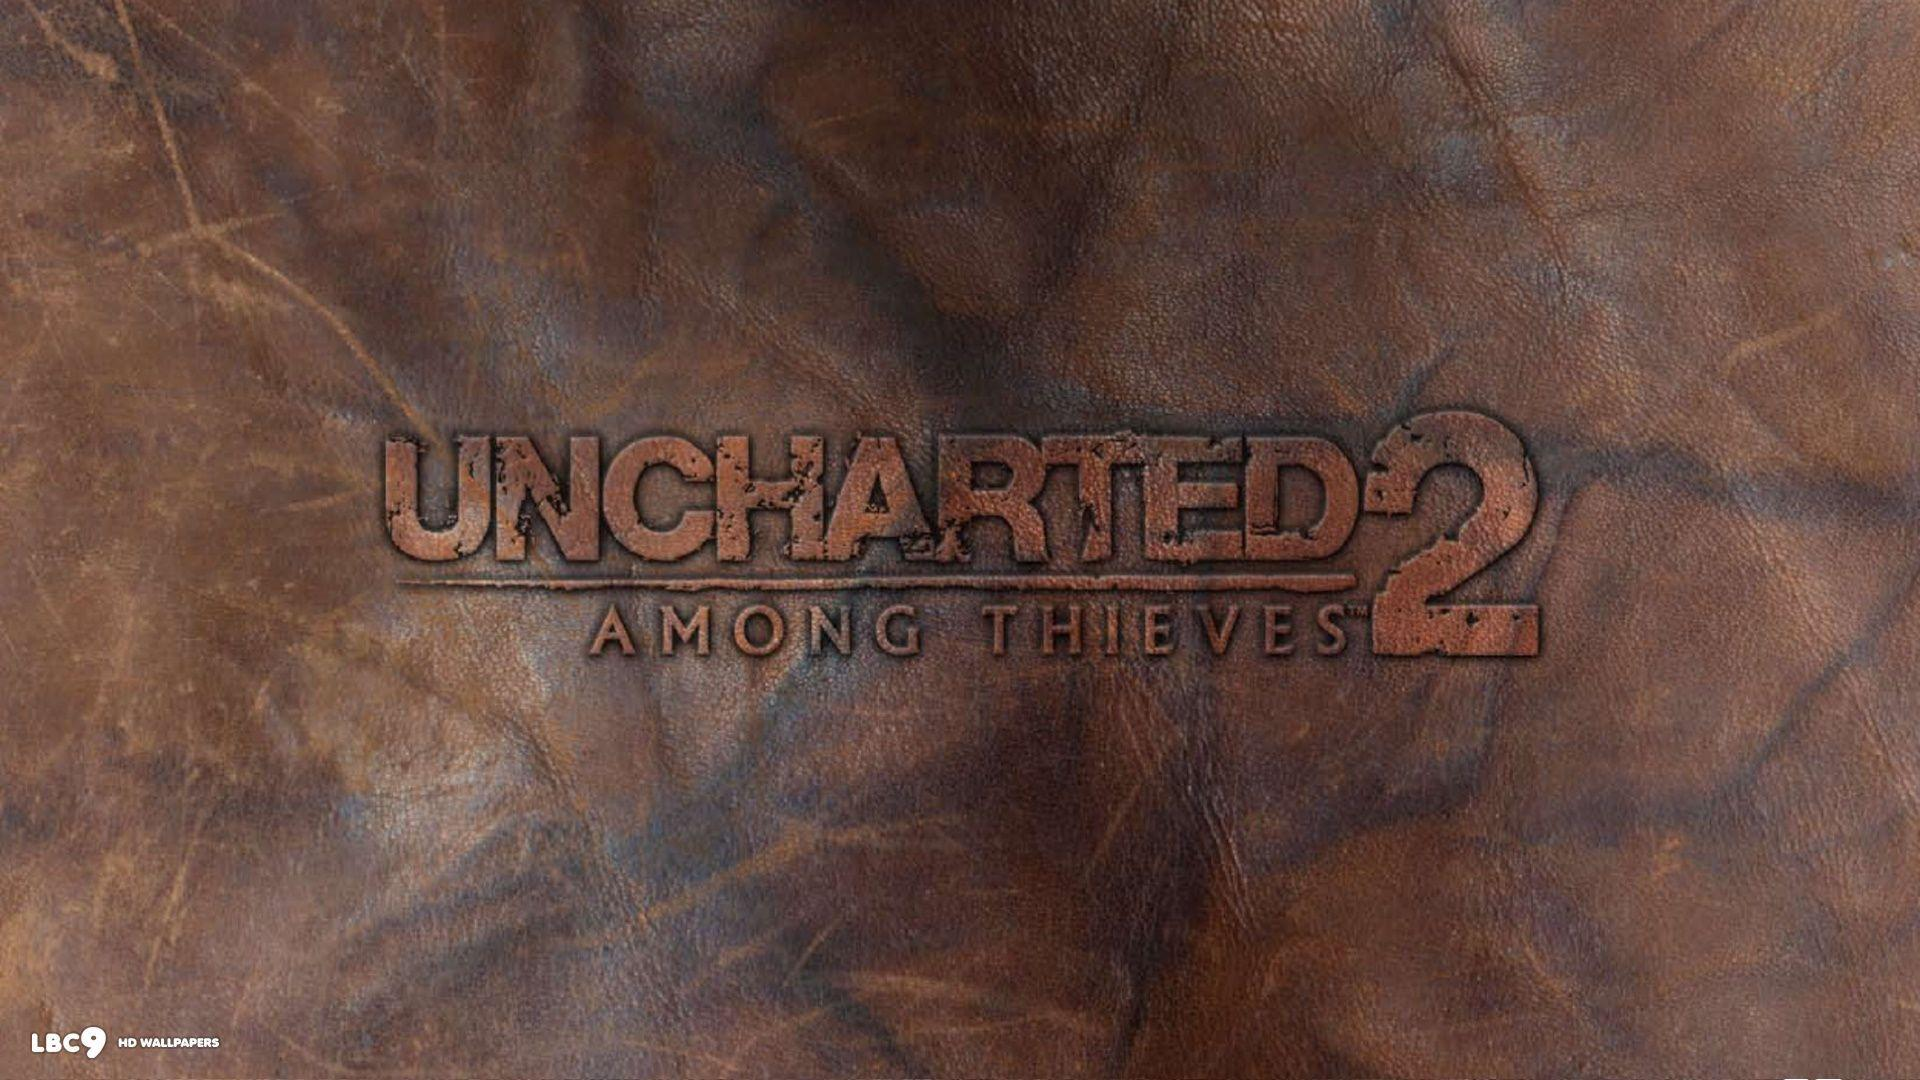 uncharted 2 among thieves wallpapers 2/8